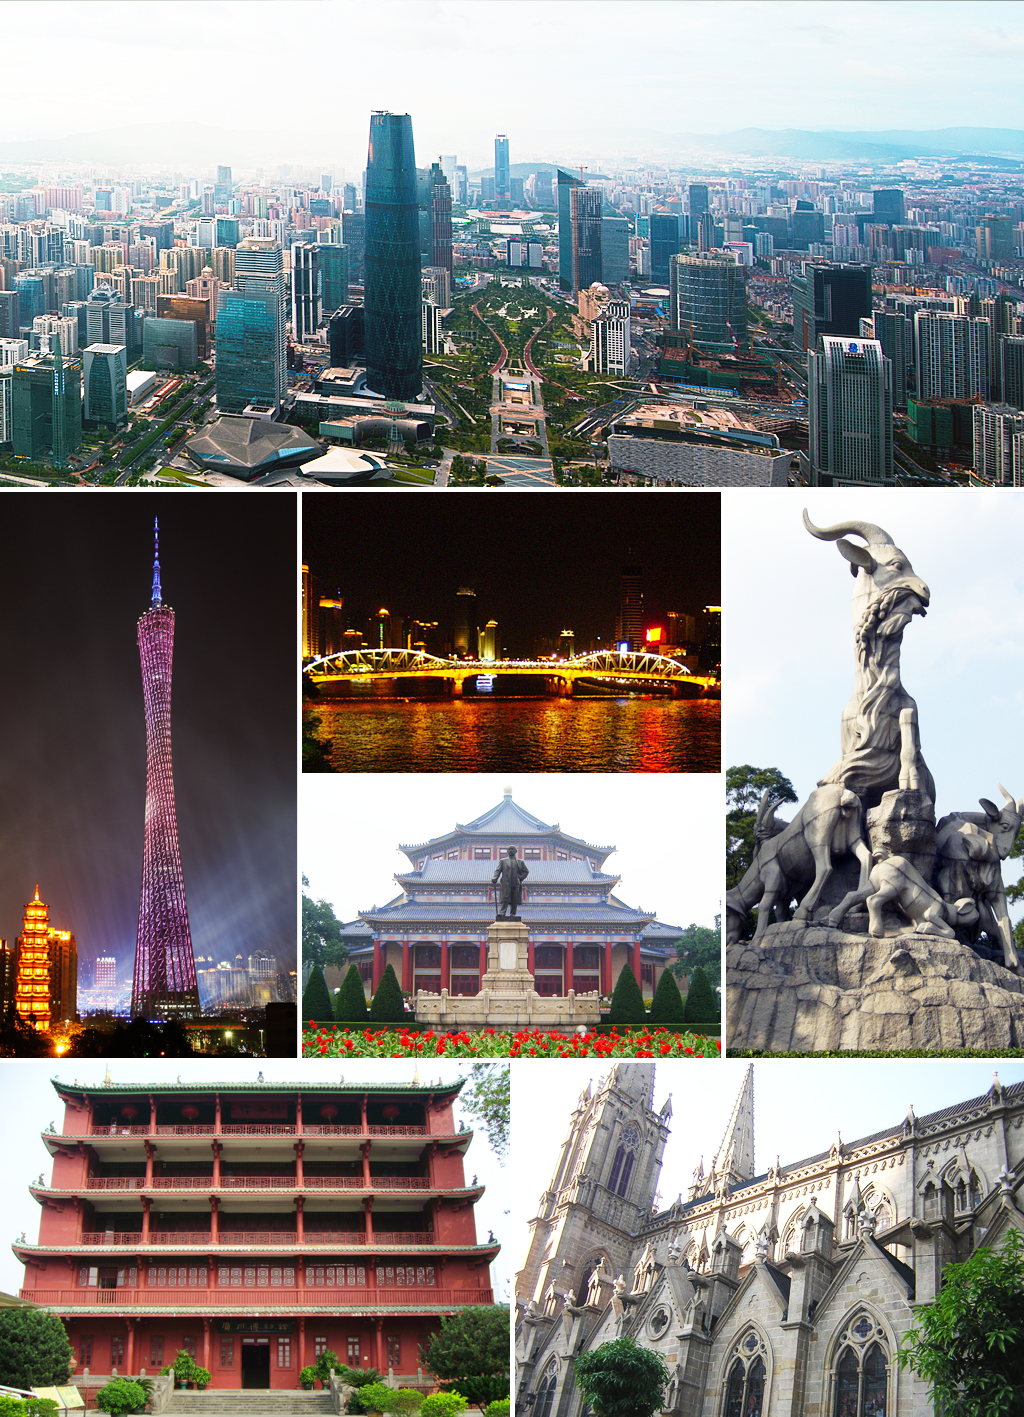 http://upload.wikimedia.org/wikipedia/commons/f/fe/Guangzhou_montage.png?uselang=ru.PNG